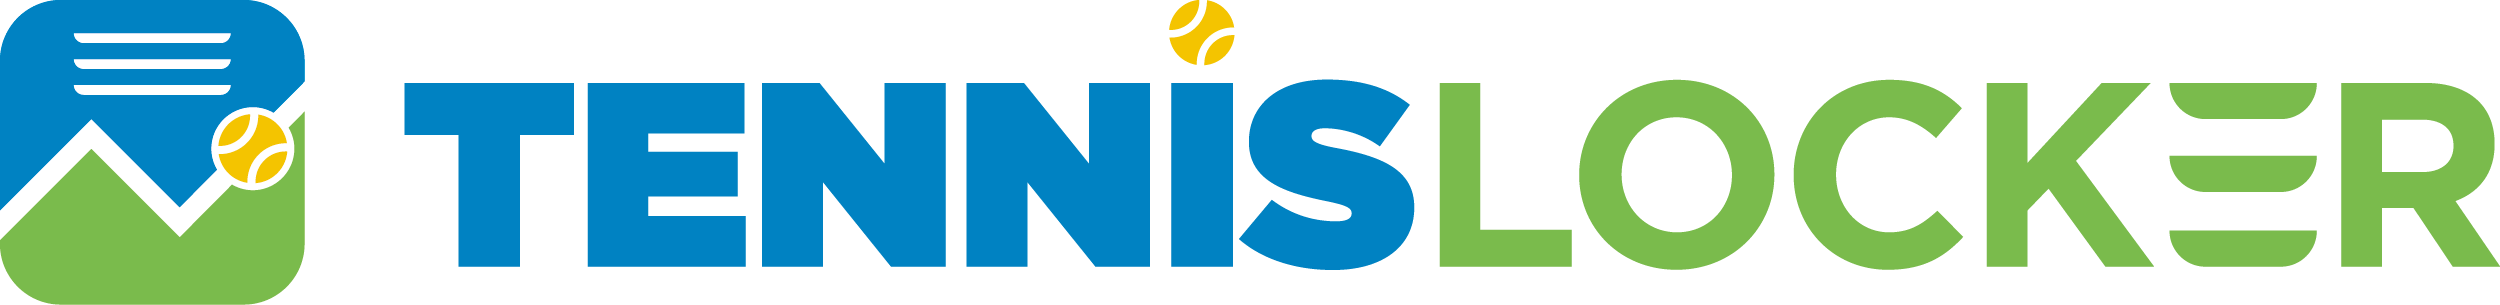 tennislocker_logohoriz_transparent.png